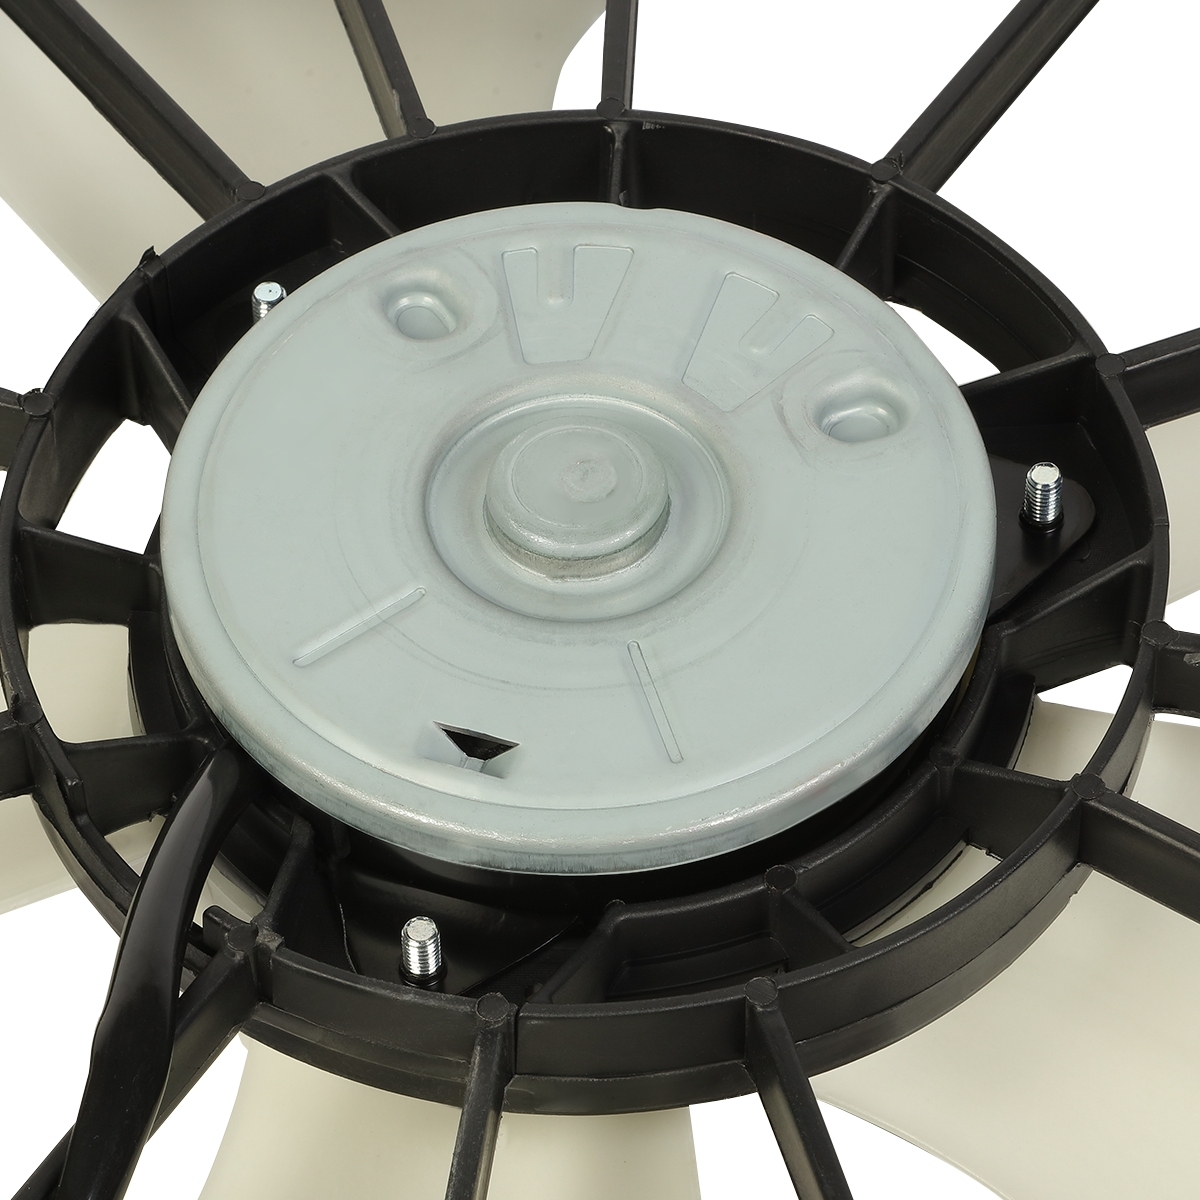 09-14 Acura TL OE Style Replacement Radiator Cooling Fan ...